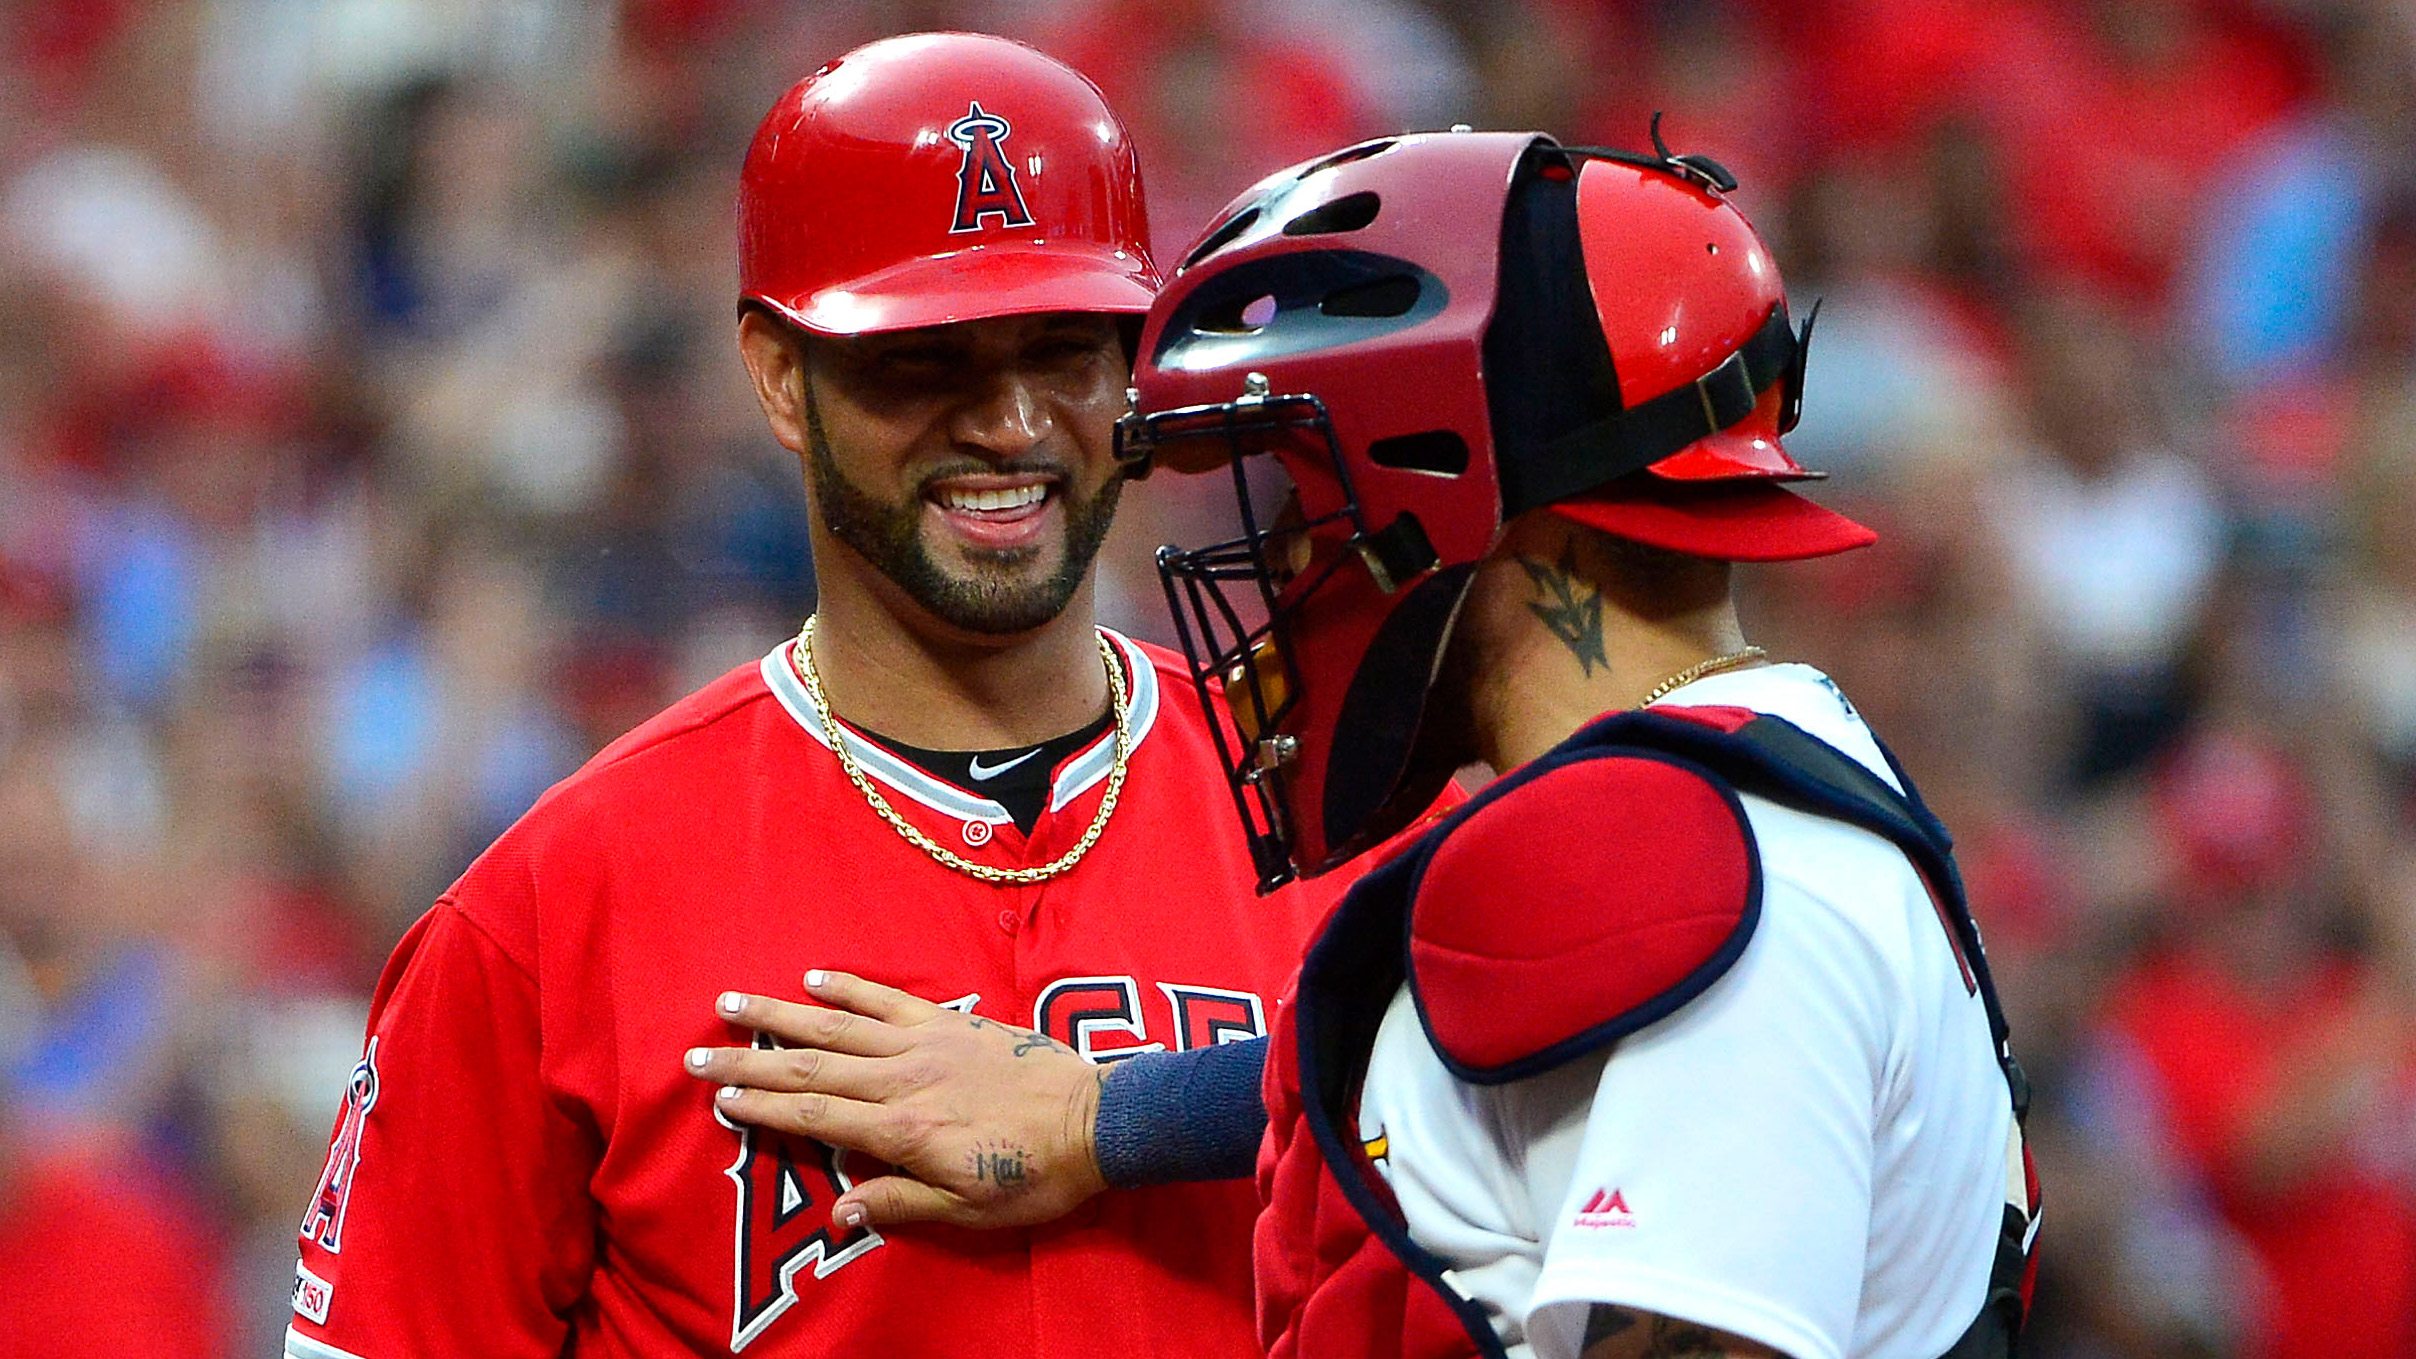 Cards rally falls short in the ninth, but fans give Pujols a perfect sendoff